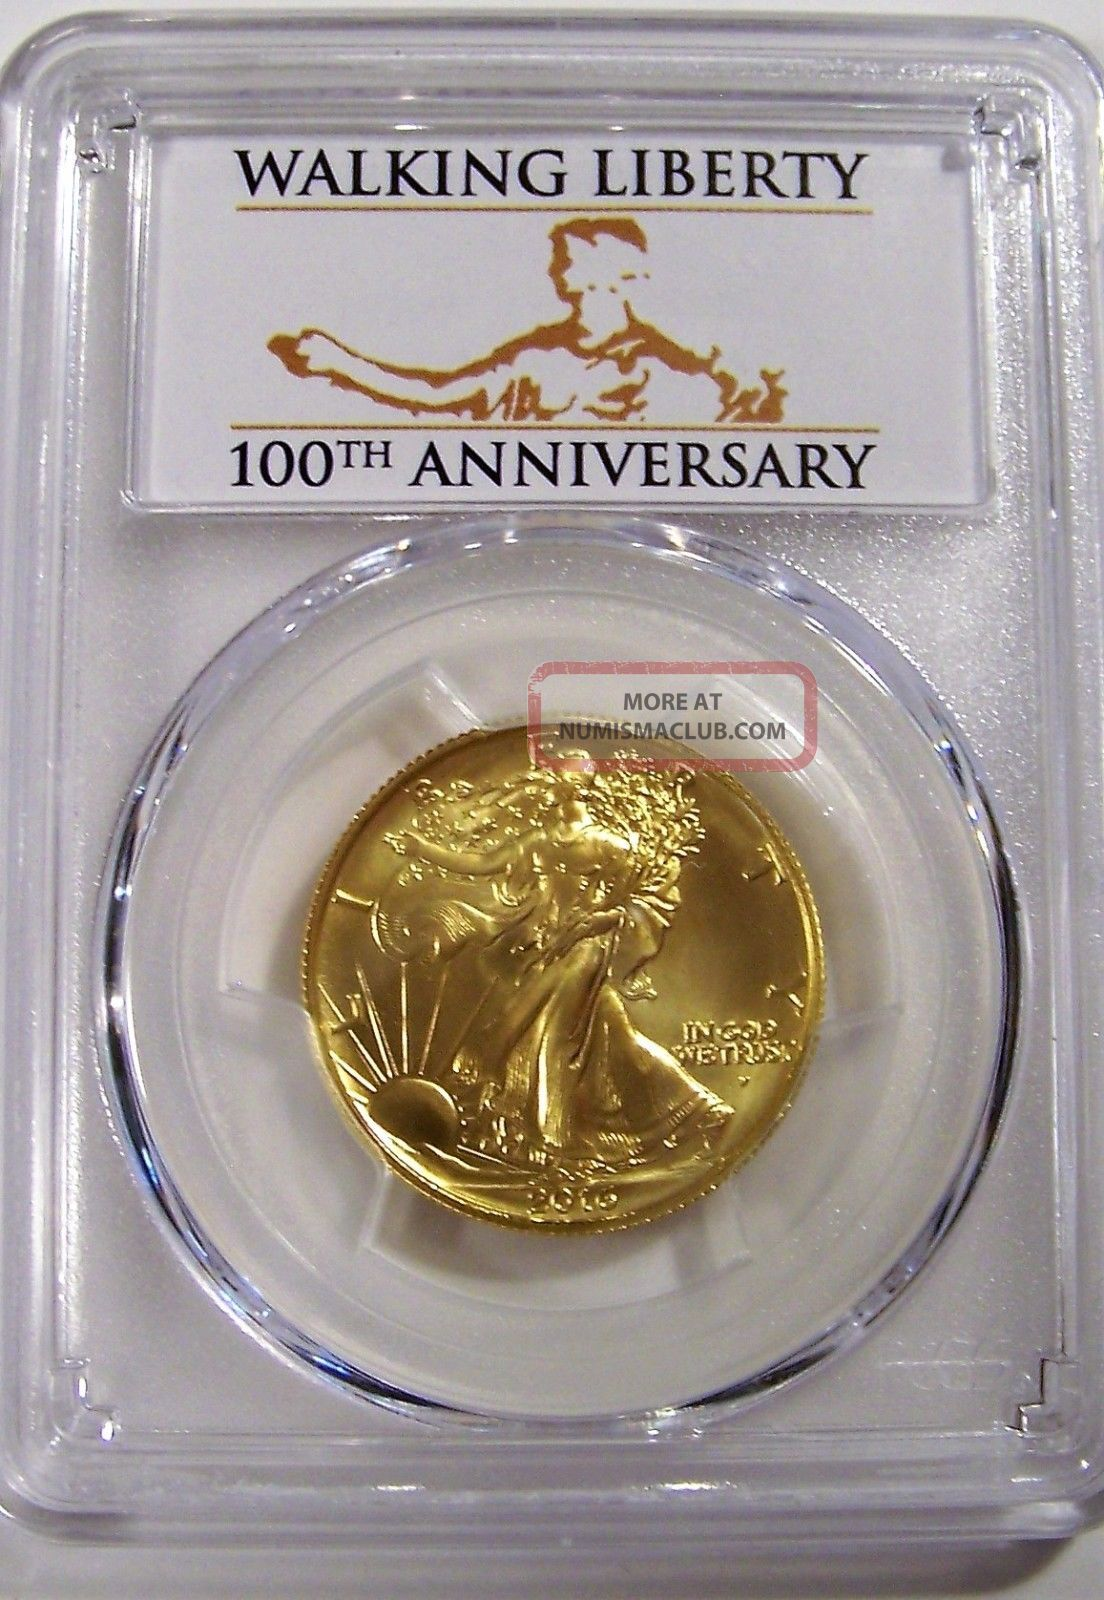 2016 - W Gold Walking Liberty Half Dollar First Strike Sp70 Pcgs Centennial Label Gold photo